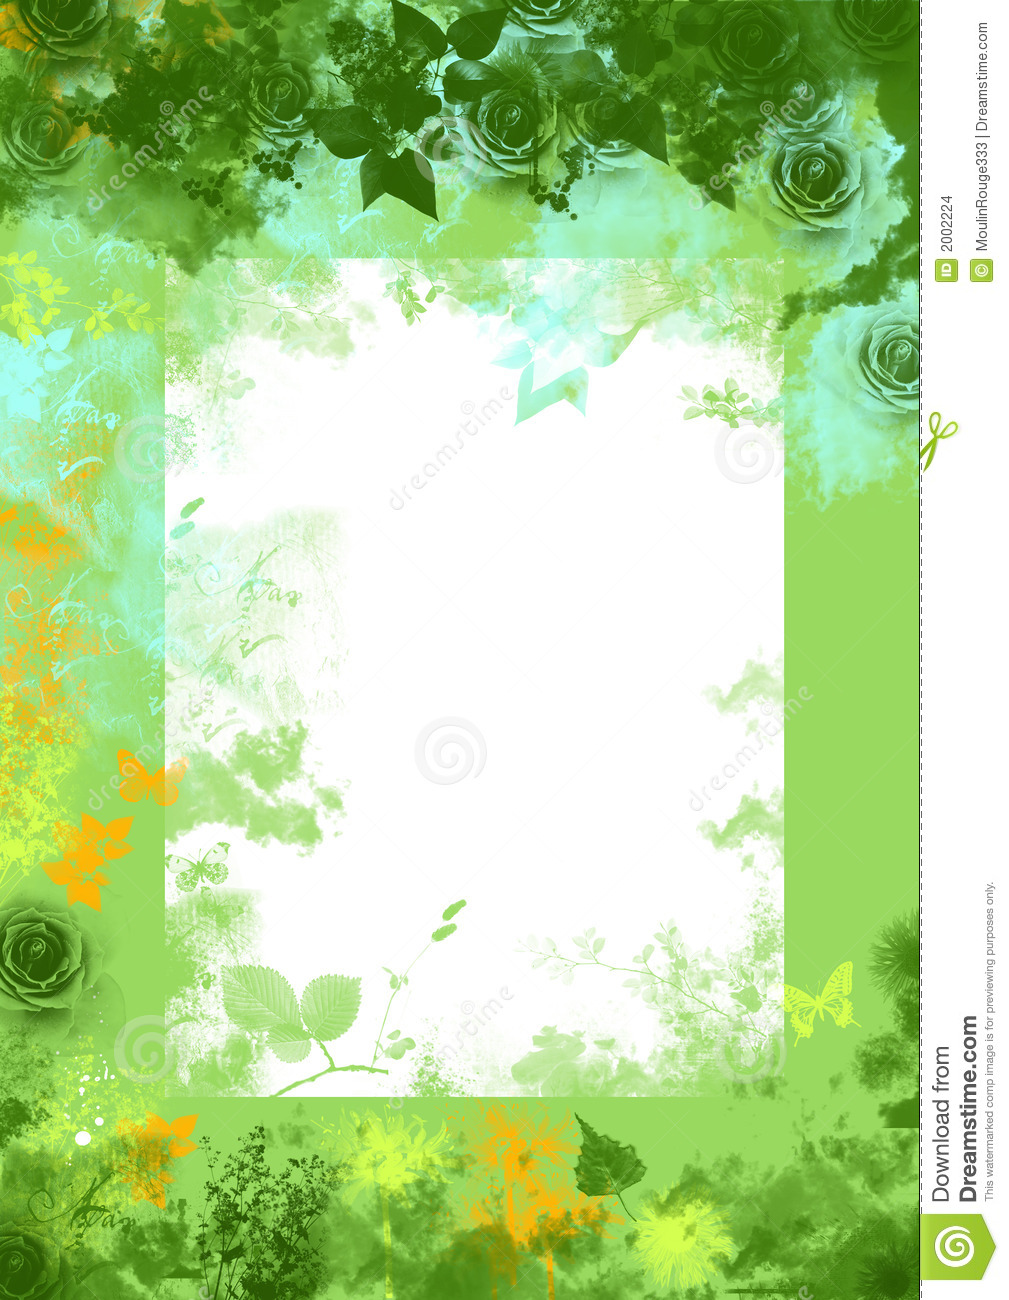 green spring background - photo #44